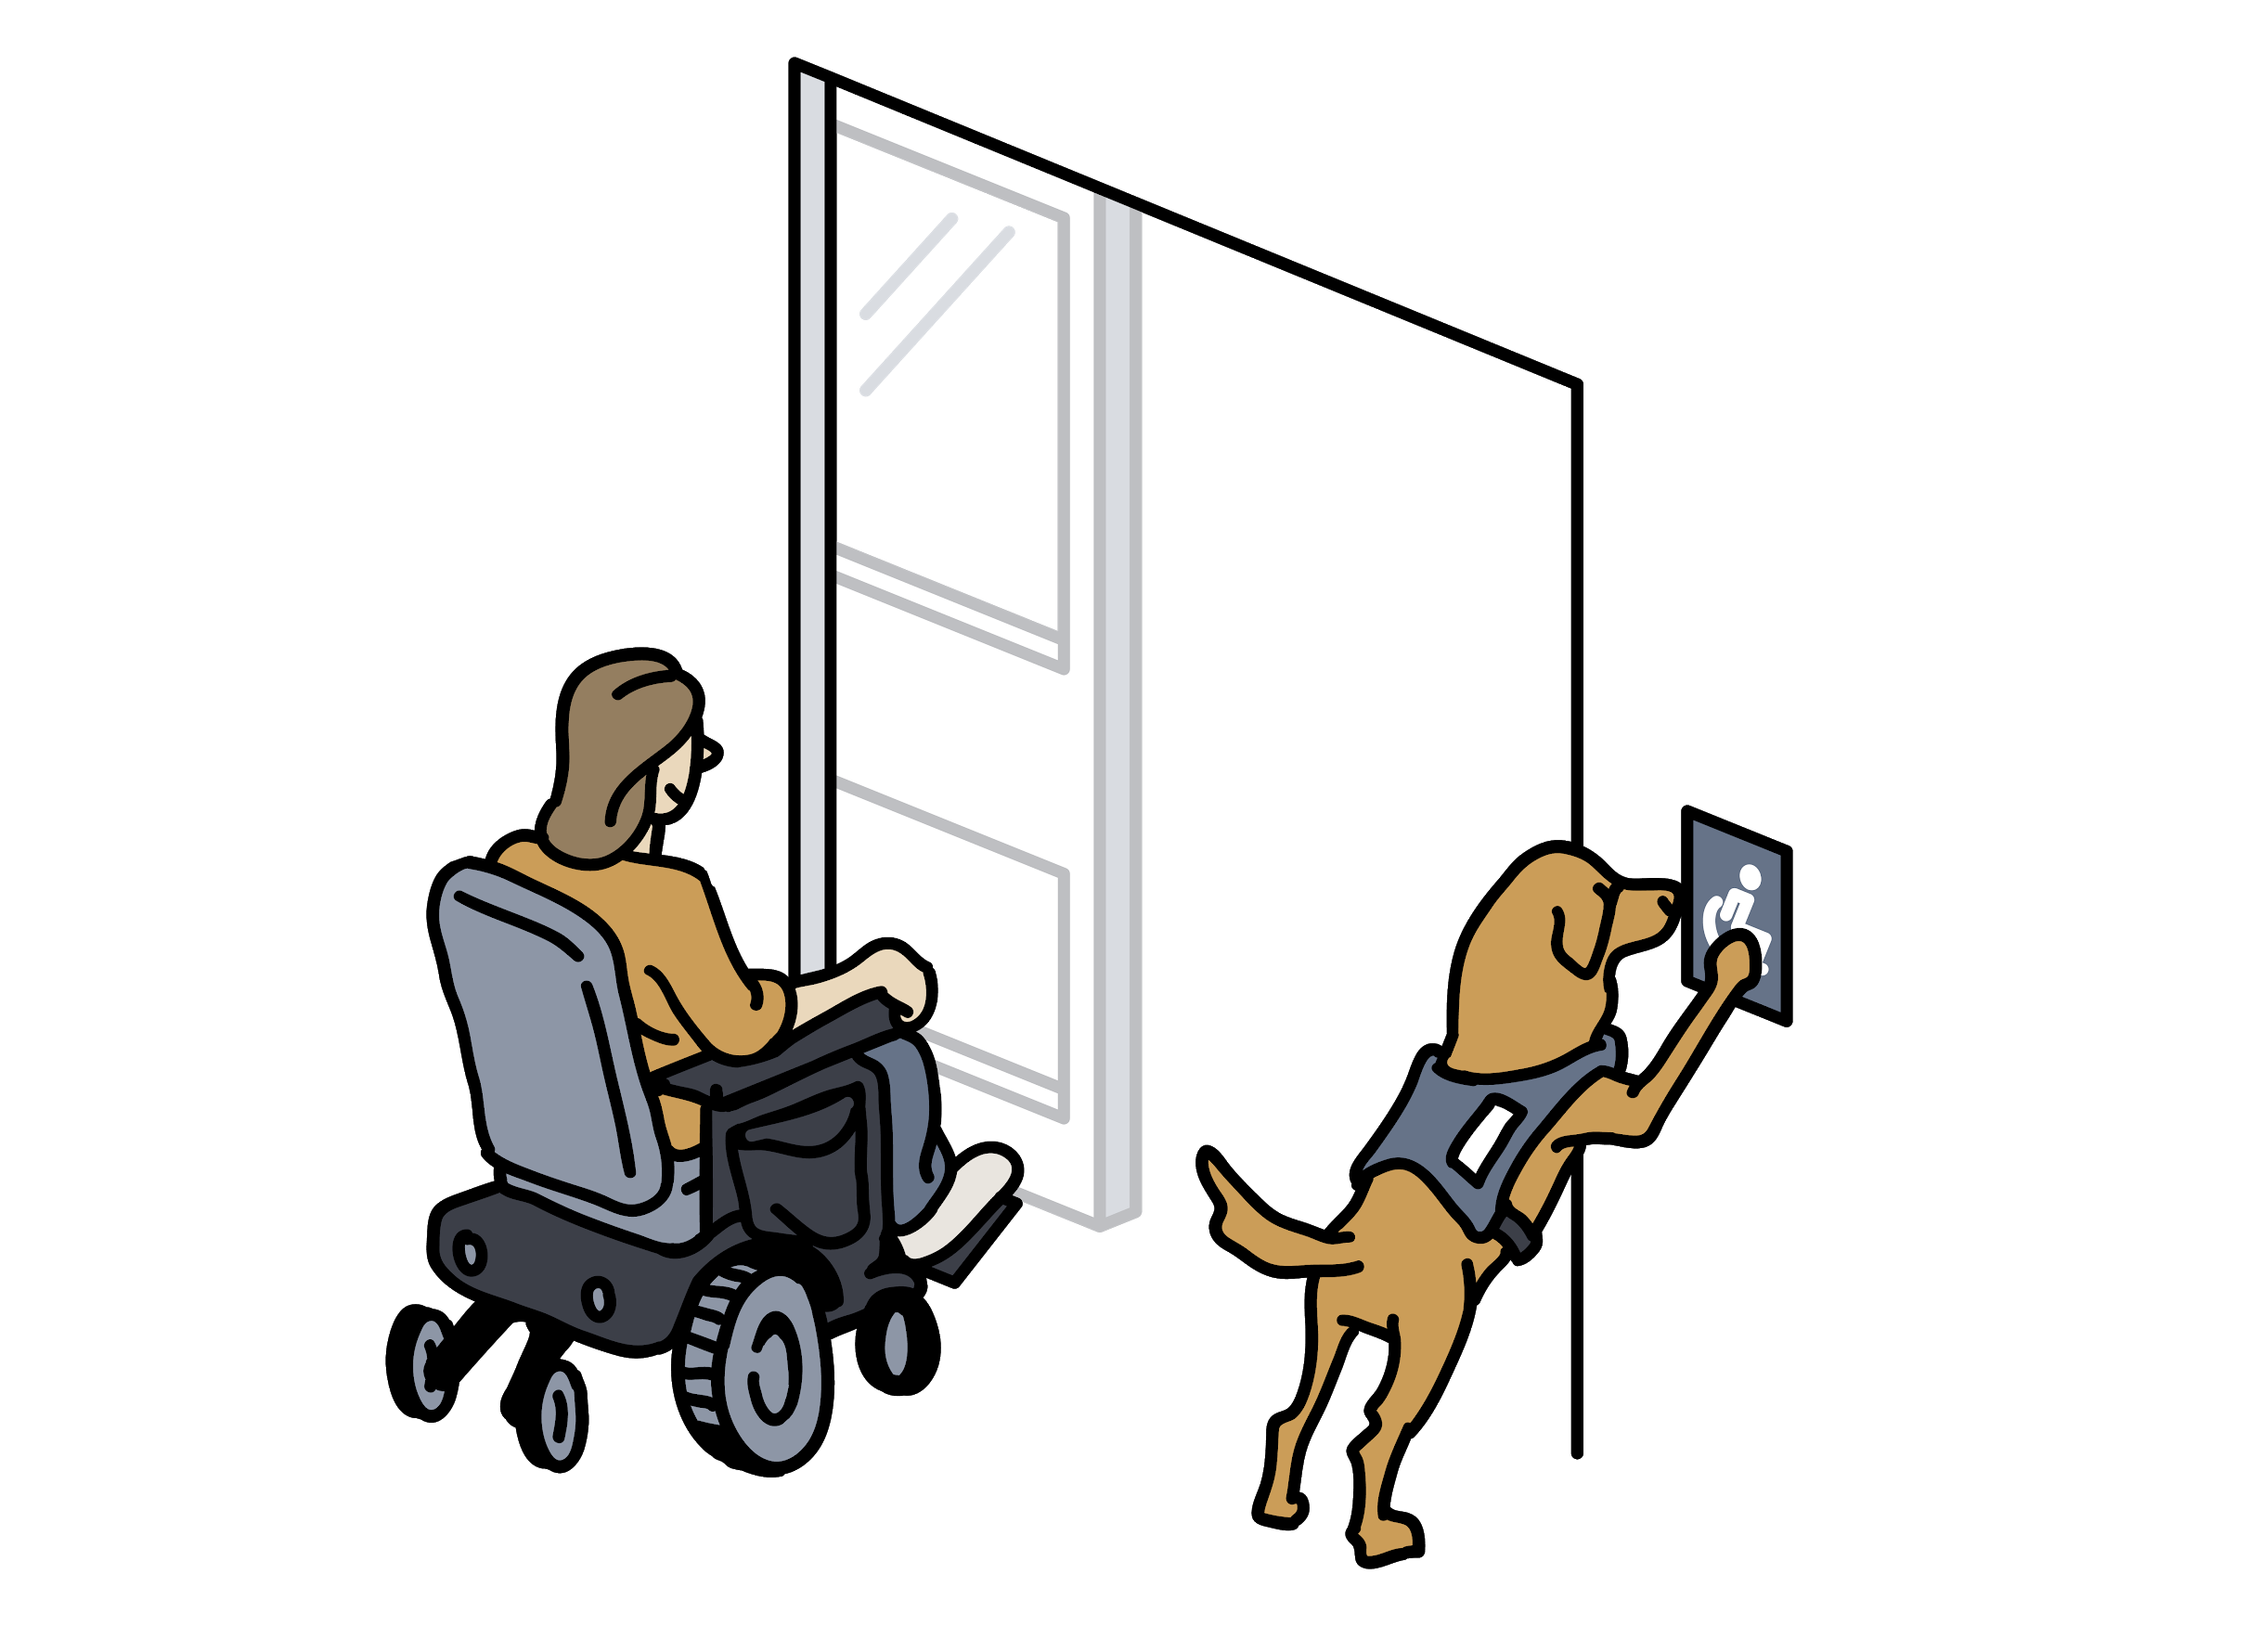 UNC_OpioidResearch_illustrations_studies__ServiceDog